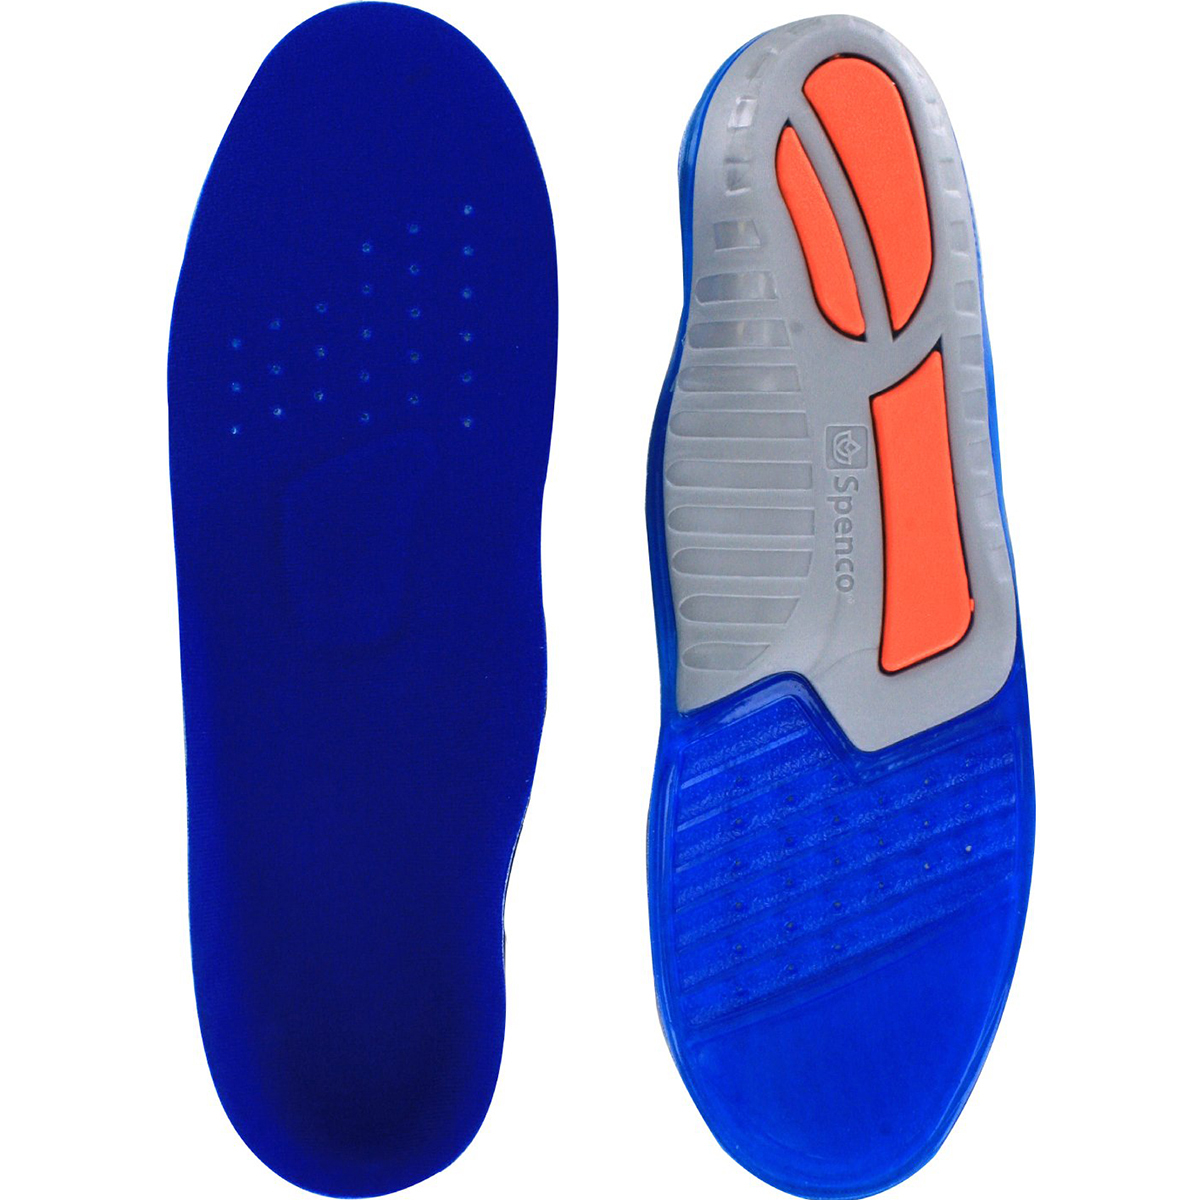 NEW Spenco Size 8-9 Mens GRF US-3 Orthopedic Basketball Shoe Insole Foot Support